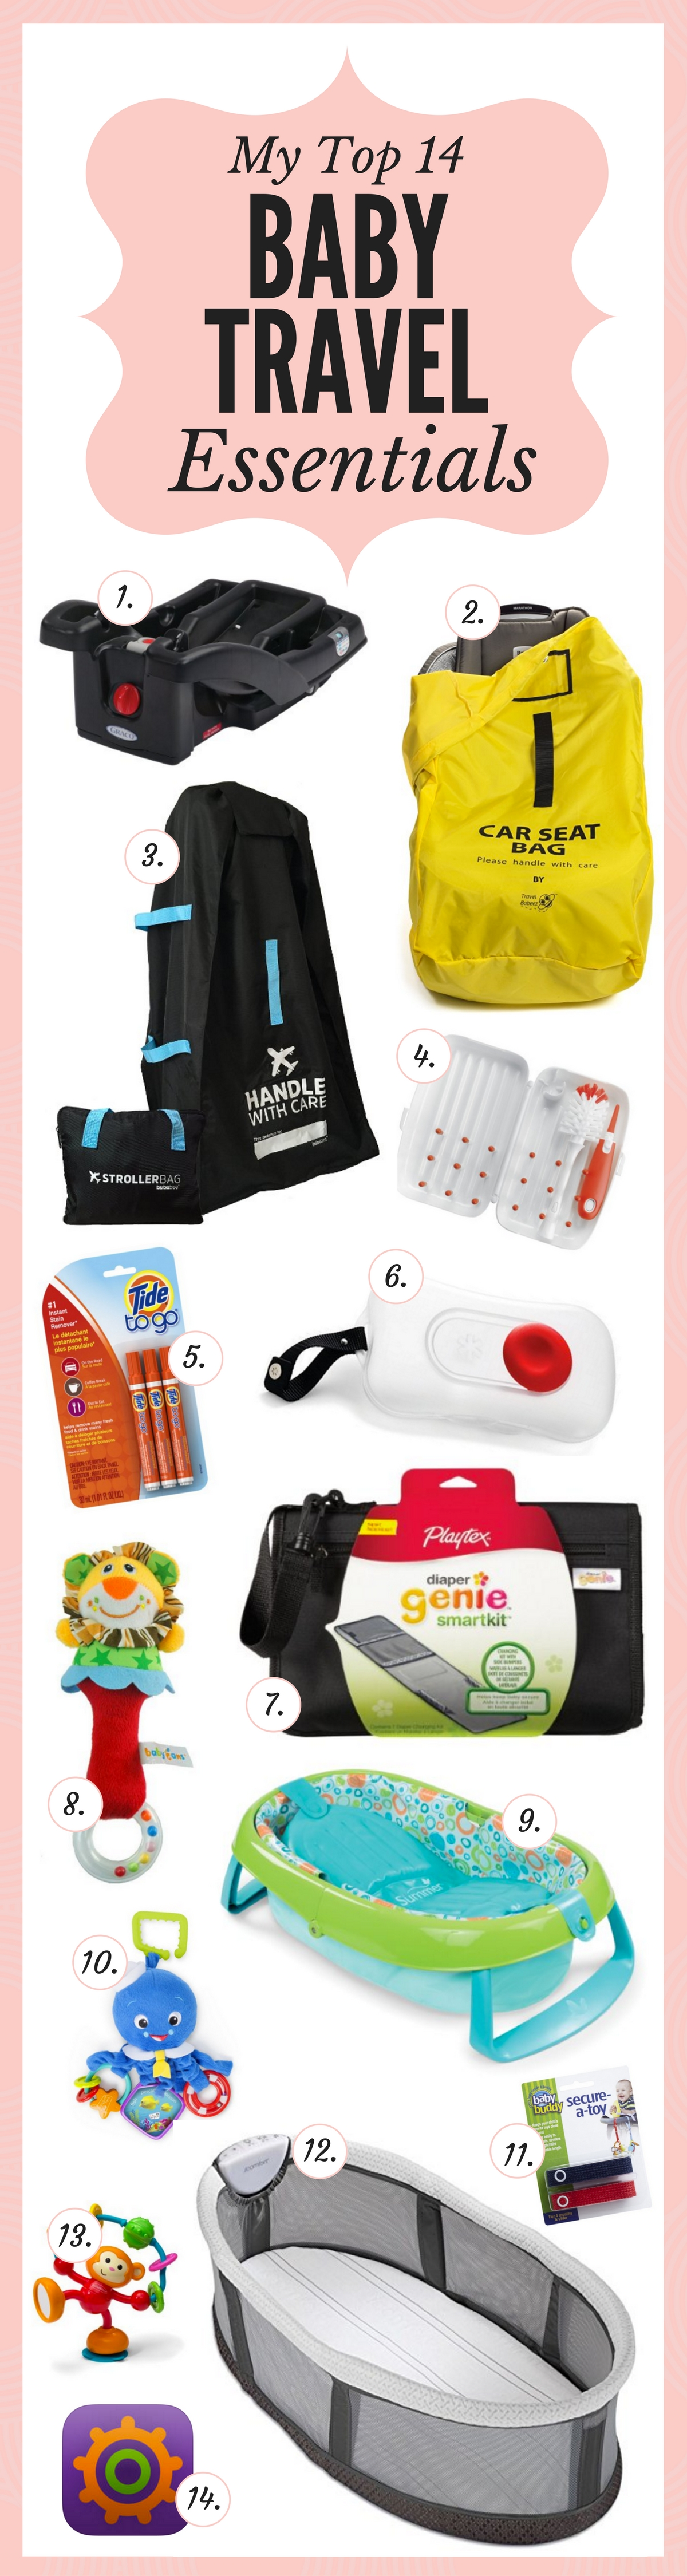 14 essentials for traveling with a baby